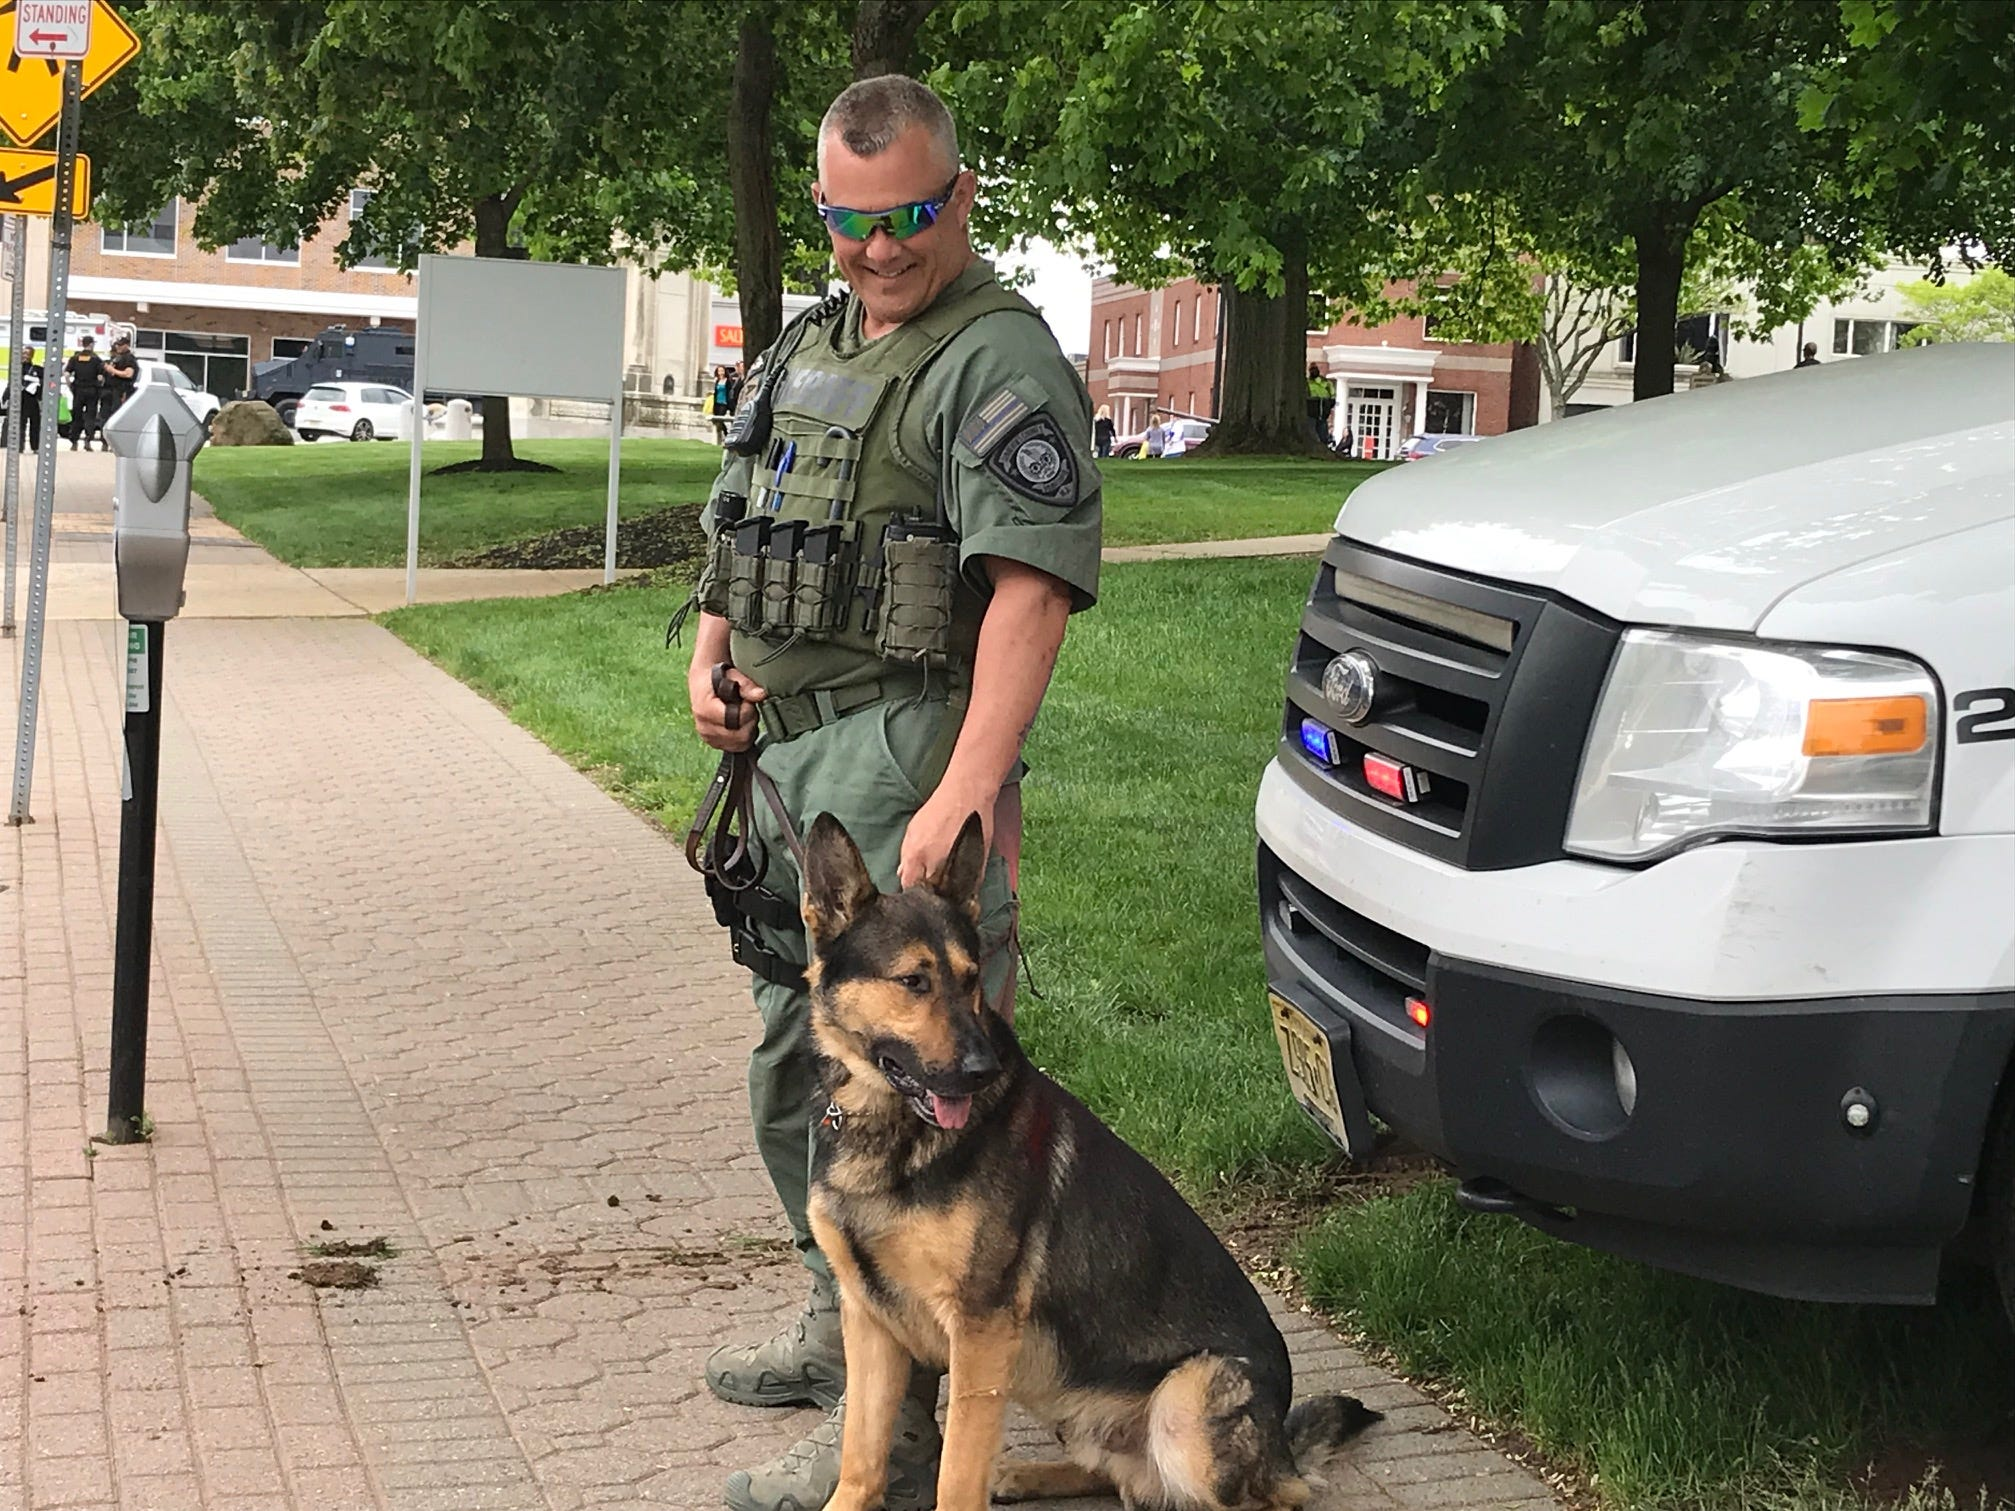 A police K-9 officer and his K-9 partner await the arrival of the Police Unity Tour in Somerville.